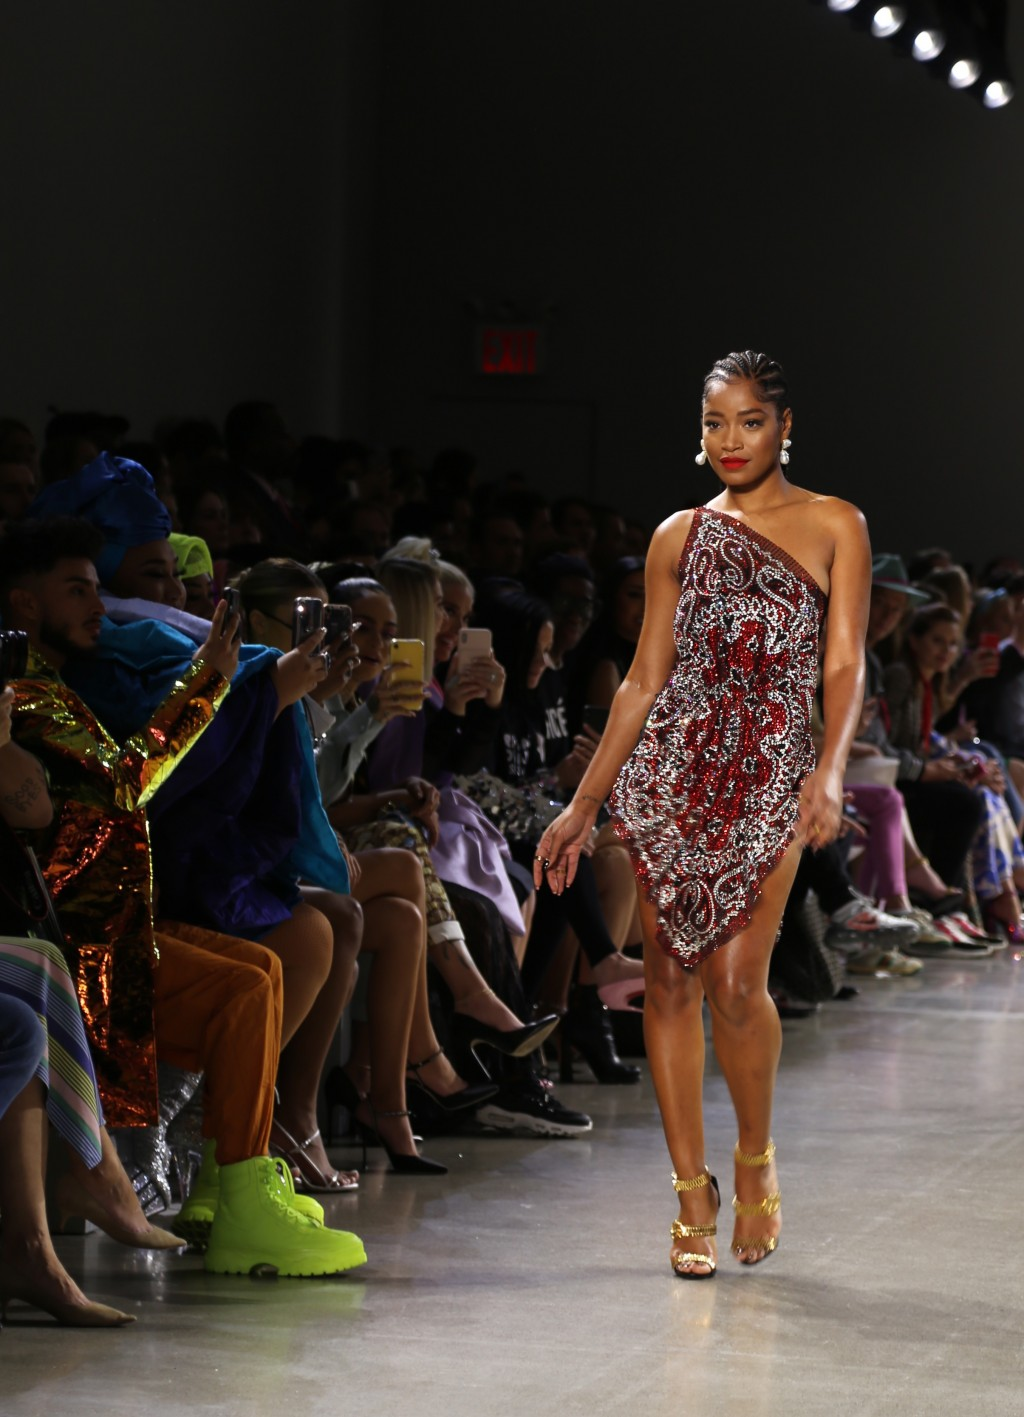 Actress Keke Palmer wears fashion from the Christian Cowan collection during Fashion Week in New York on Tuesday, Sept. 10, 2019. (AP Photo/Ragan Clar